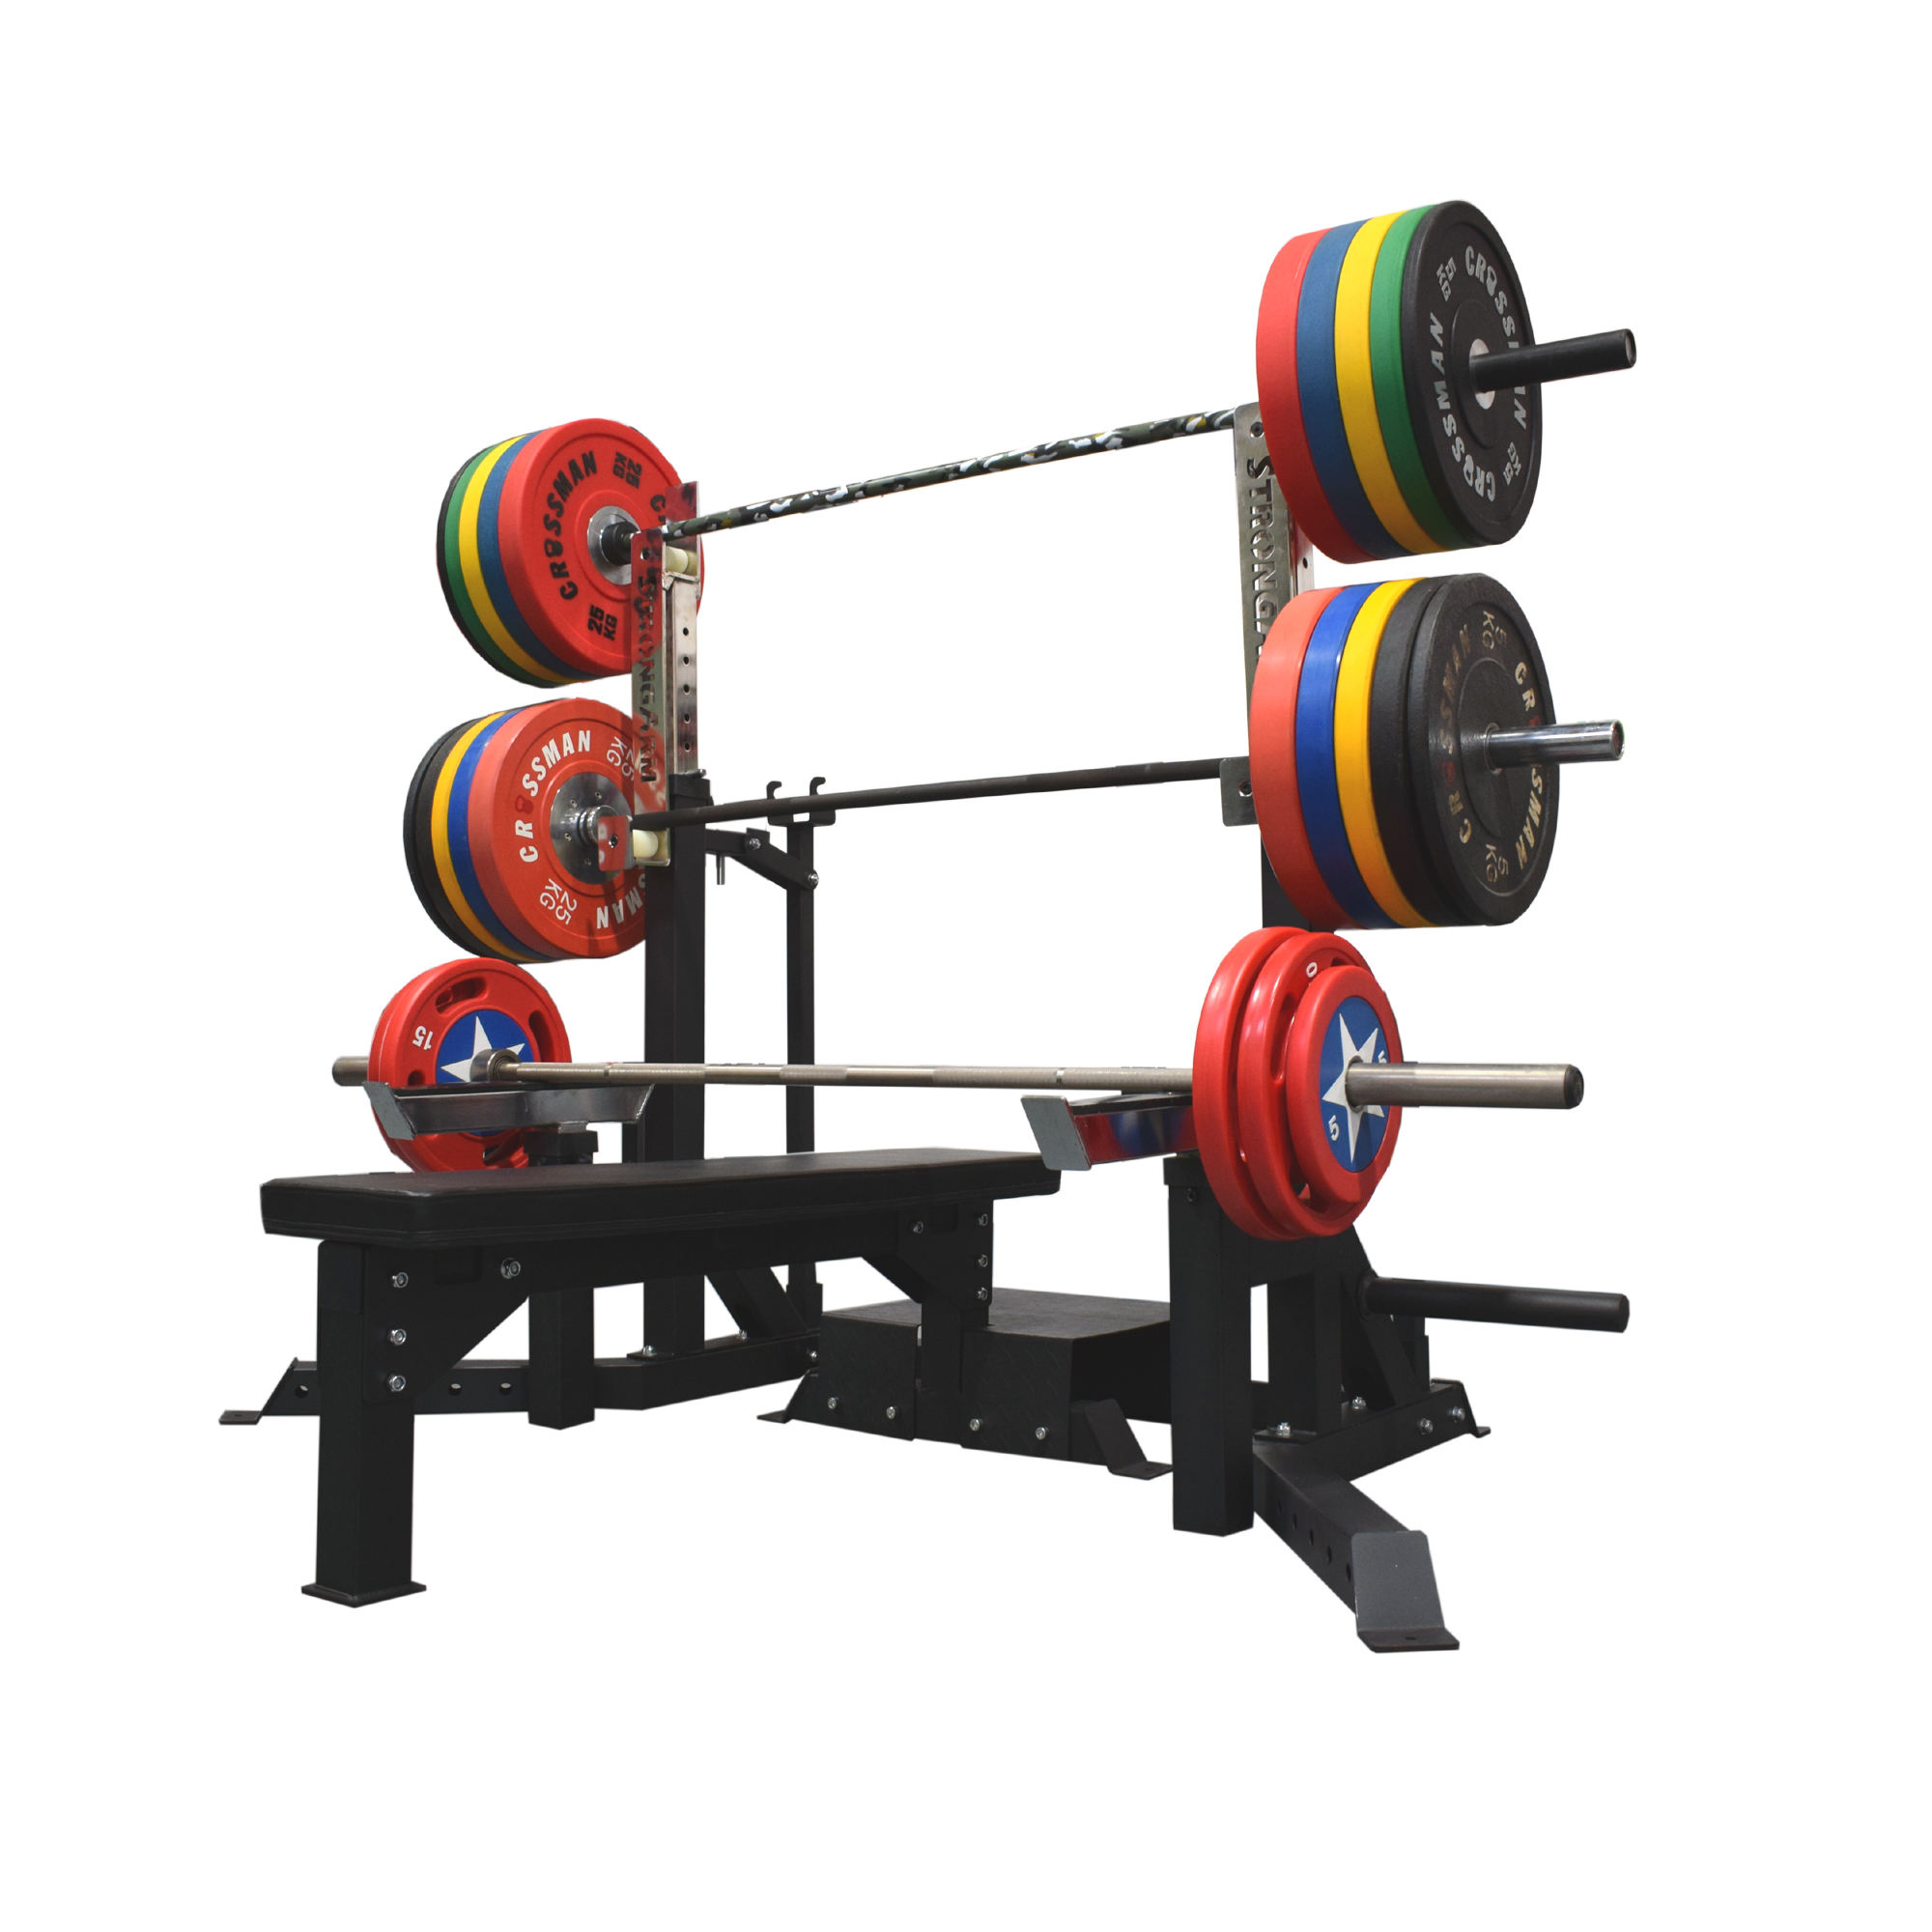 workout bench for exercises gym equipment adjustable power dumbbell bench press and squat rack barbell set weight lifting